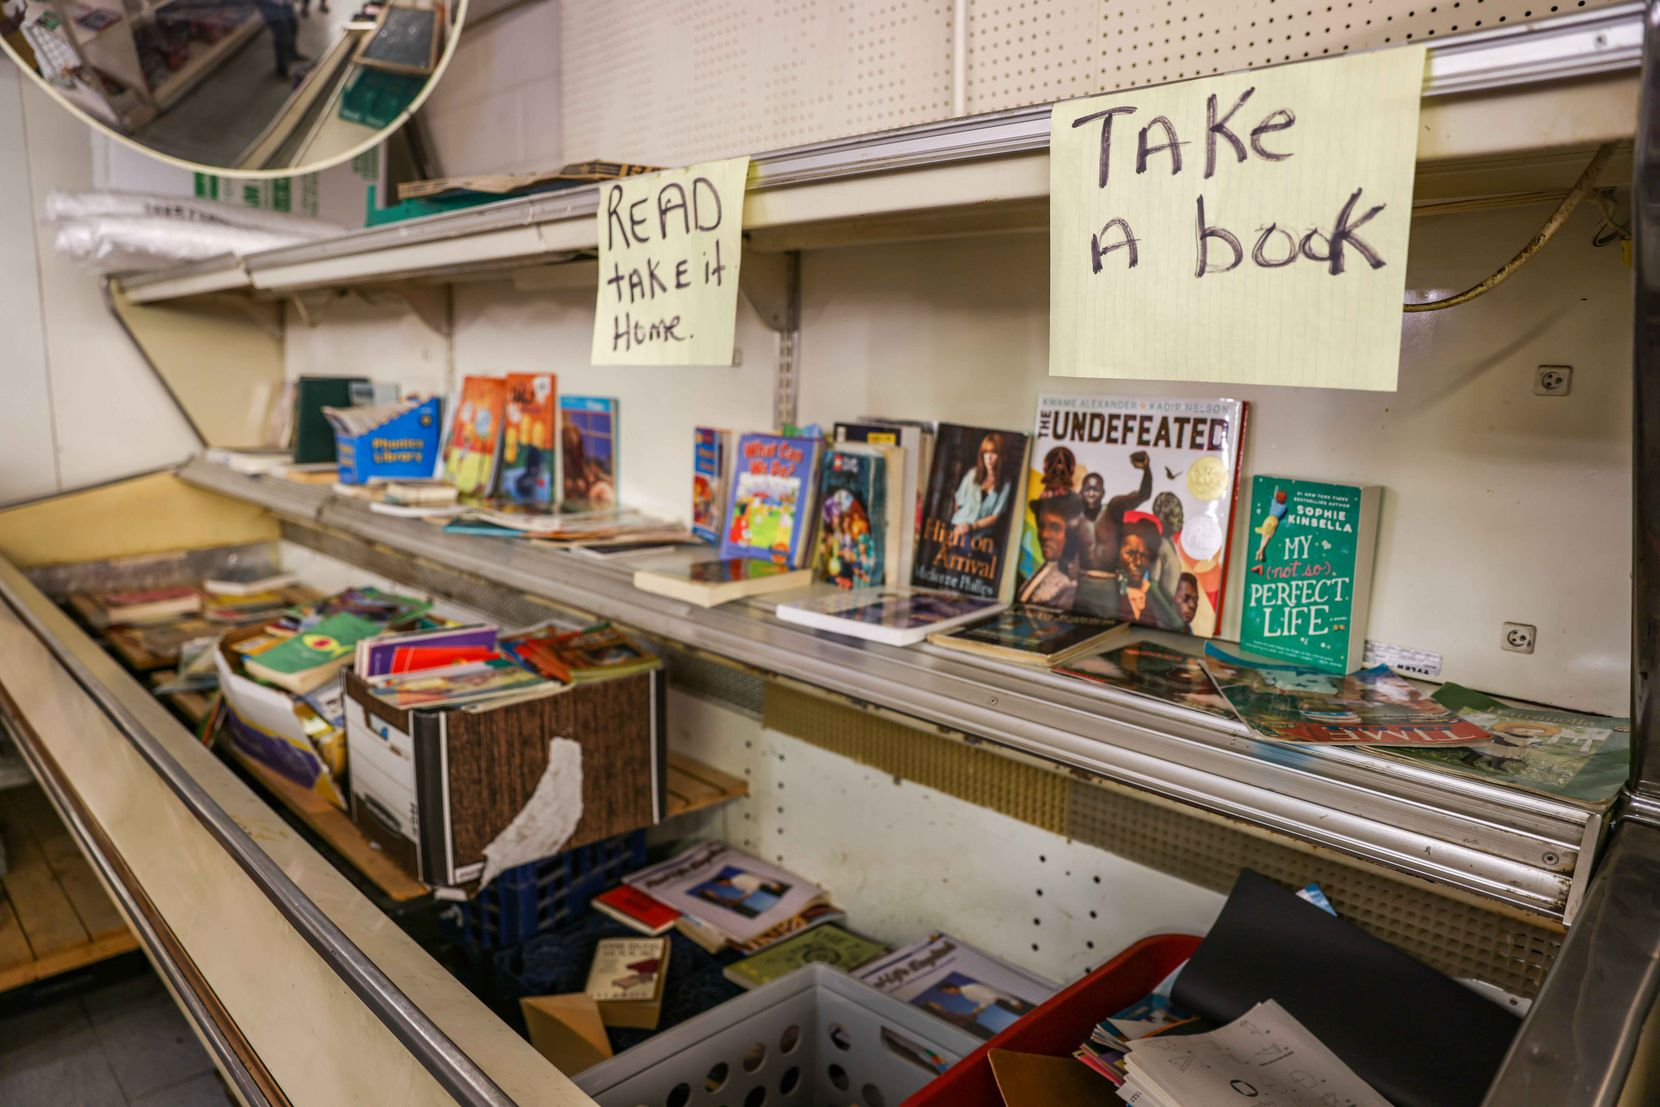 Books donated to the community rest in an old, repurposed refrigerator inside Allen's, a grocery store in South Dallas.